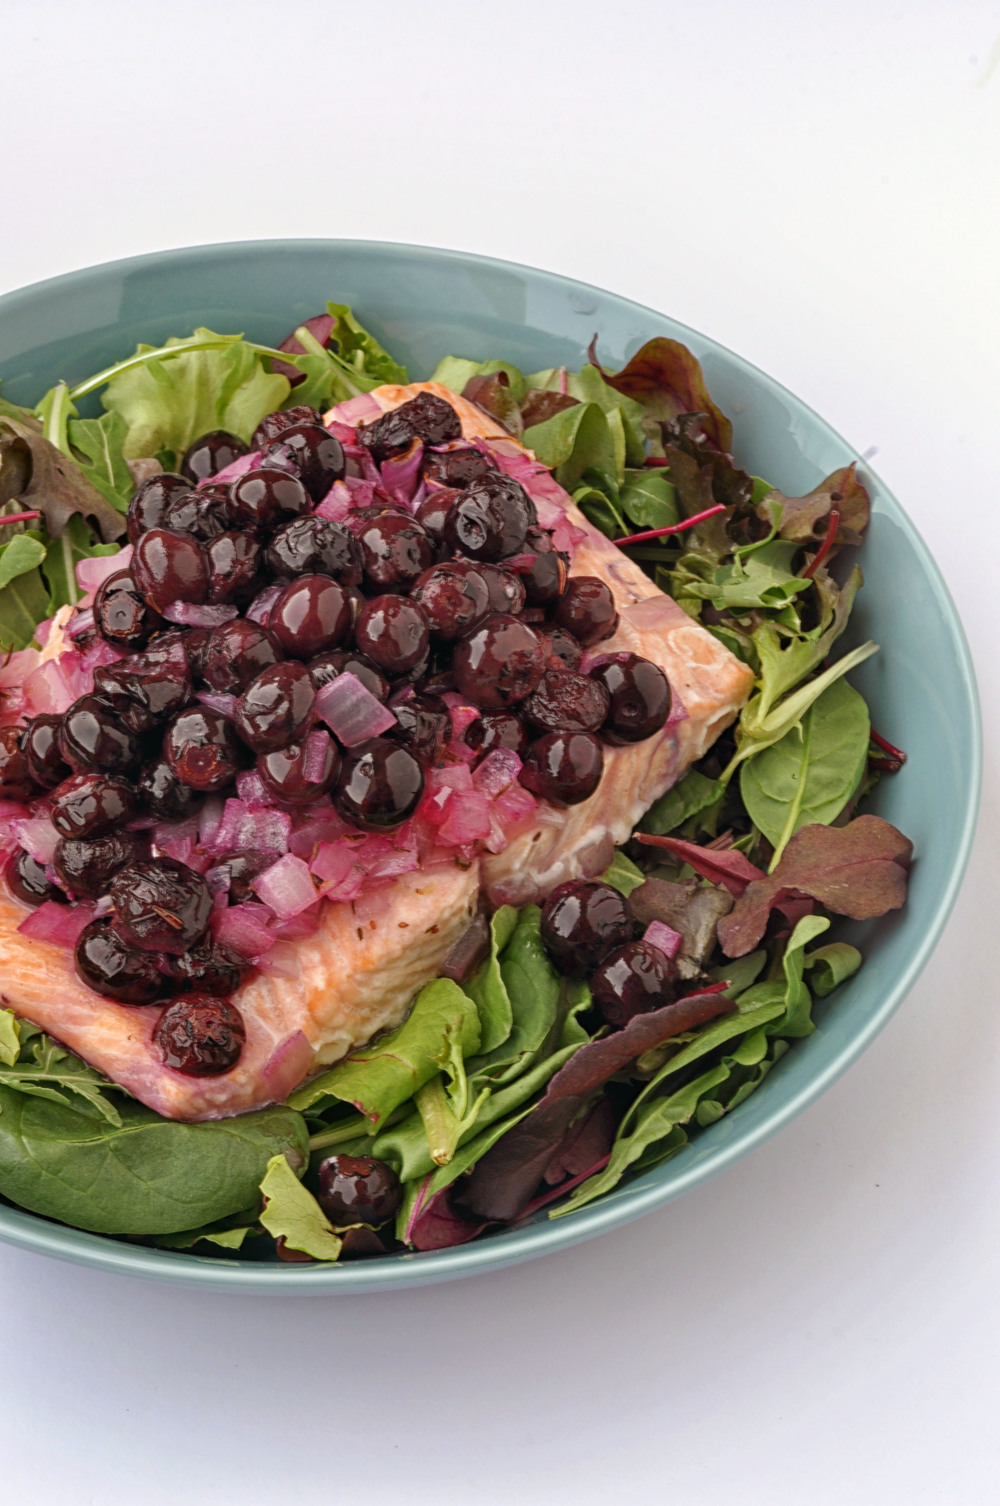 Salmon with blueberries and white wine on a bed of mixed greens. A healthy lunch or dinner recipe. | Shiny Happy Bright